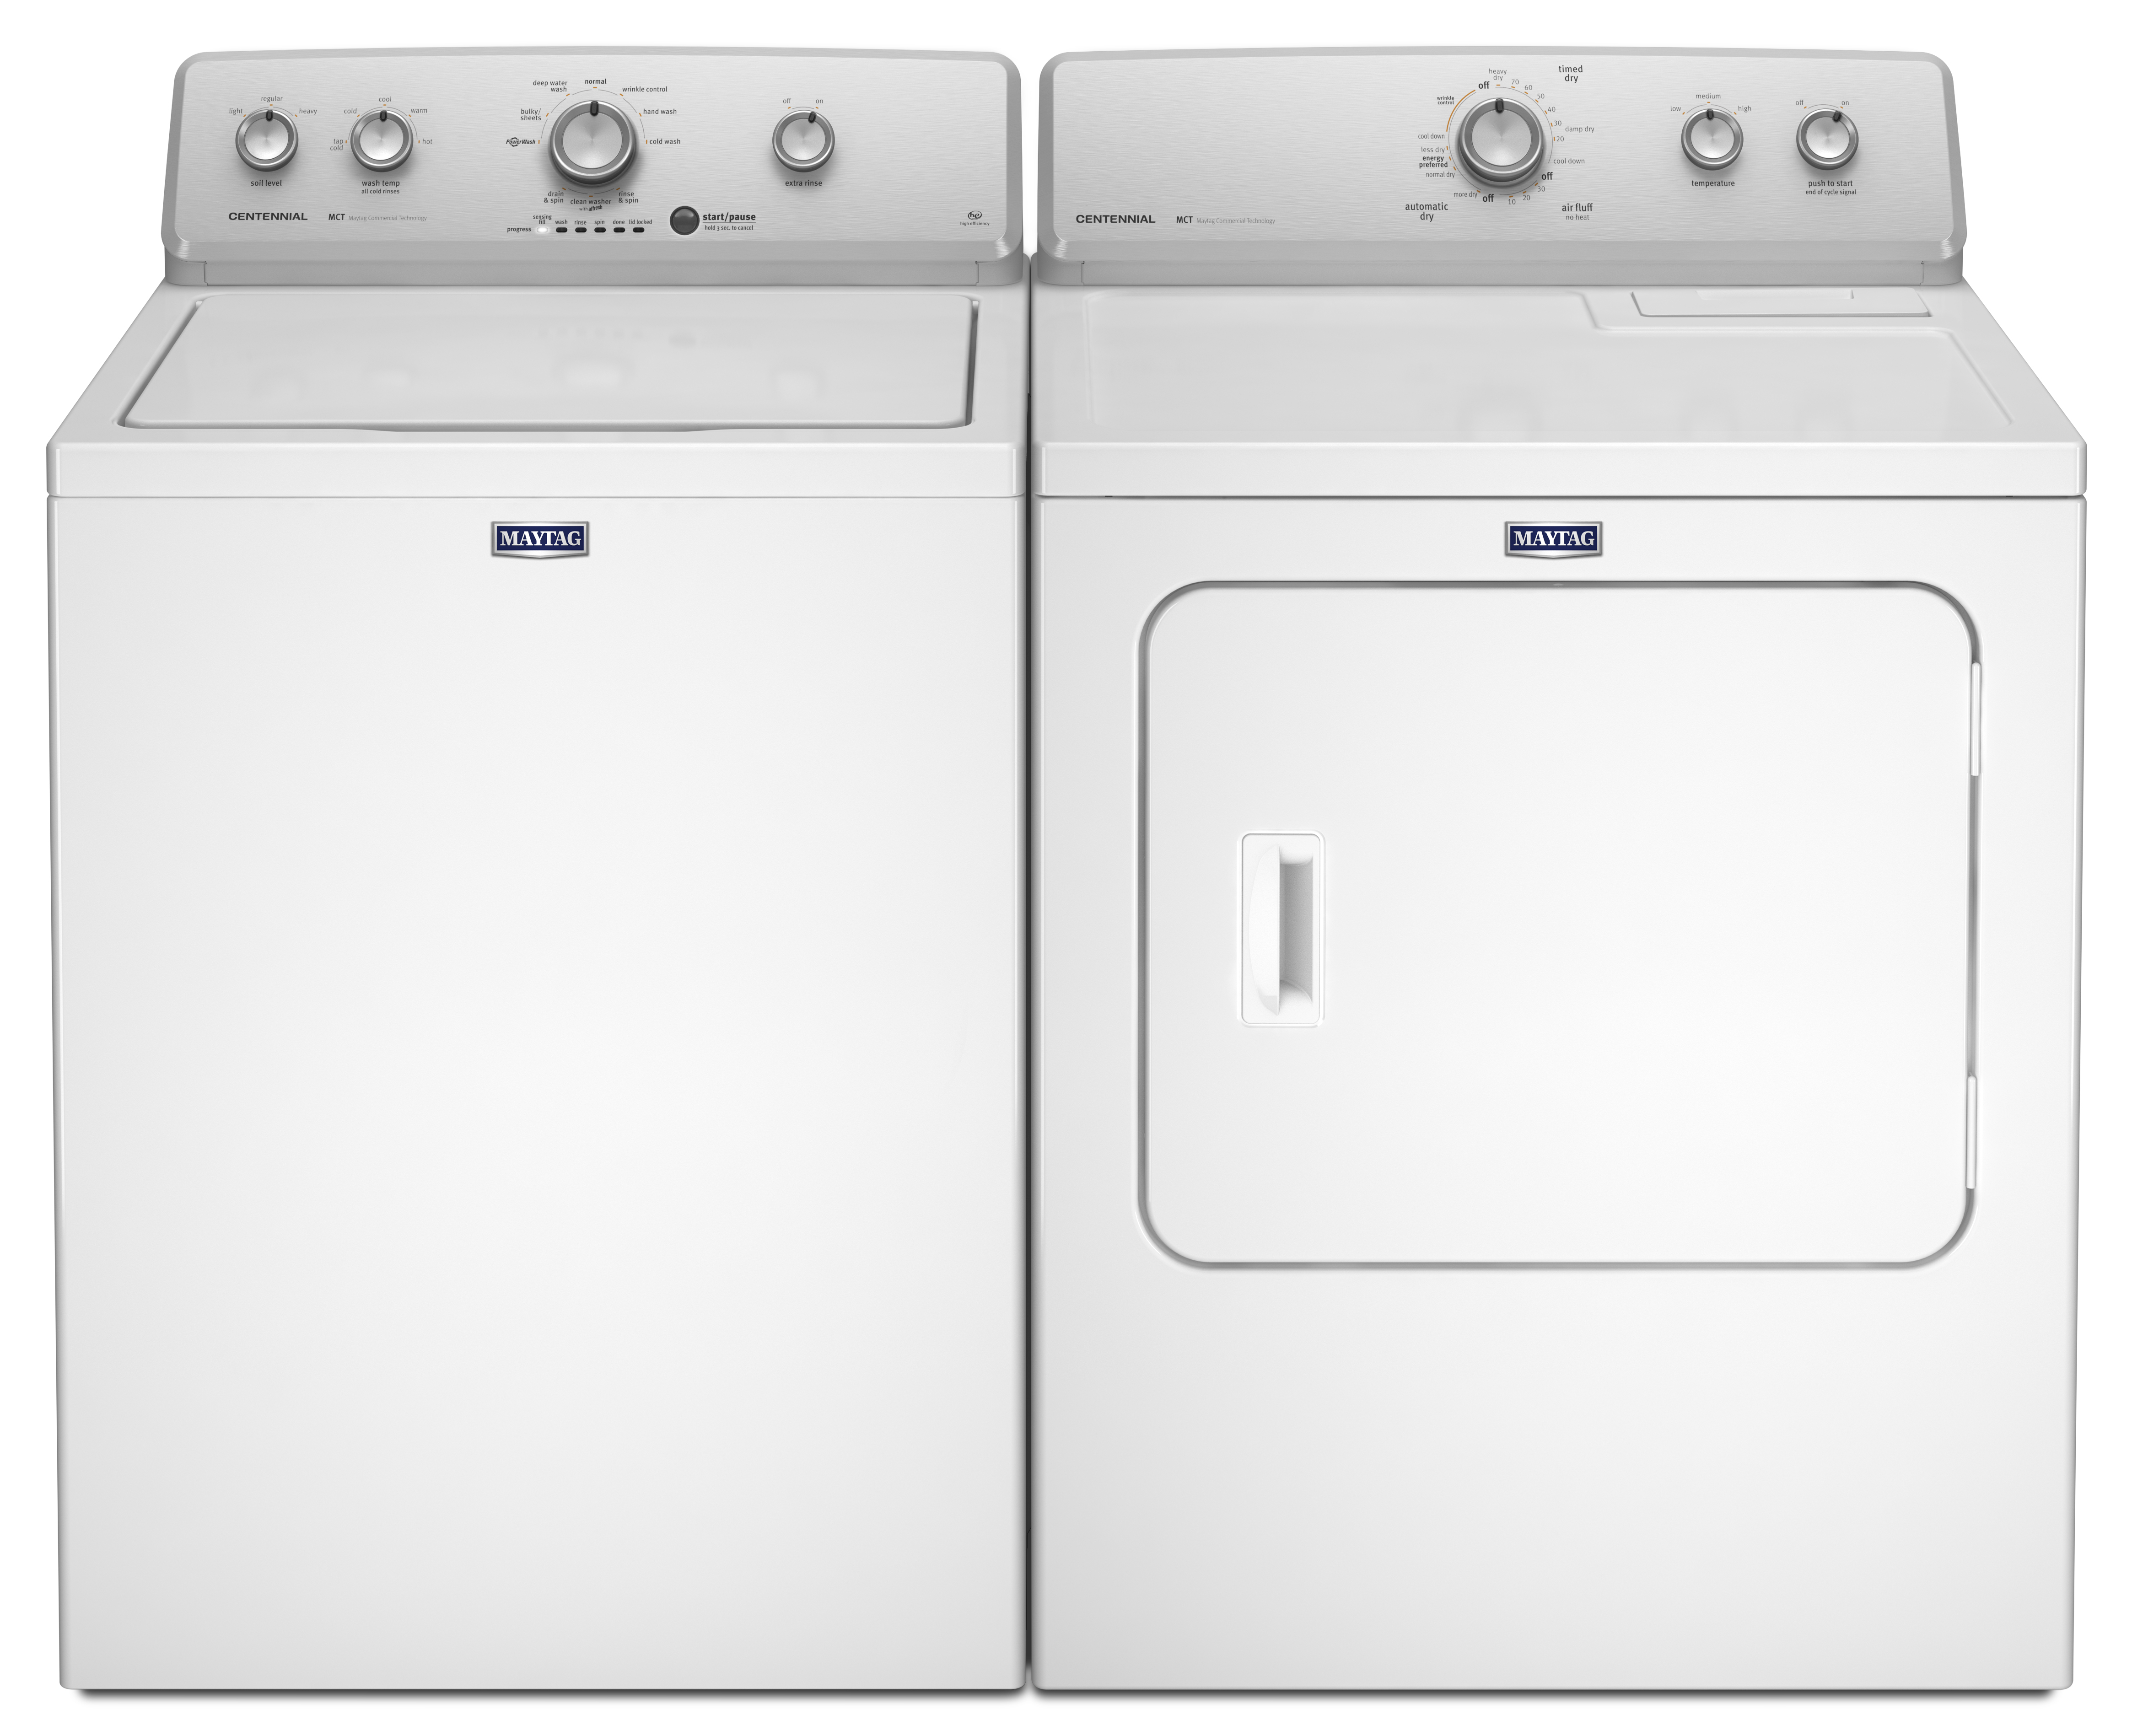 Maytag MVWC215EW 3.5 cu. ft. Top Load Washer - White